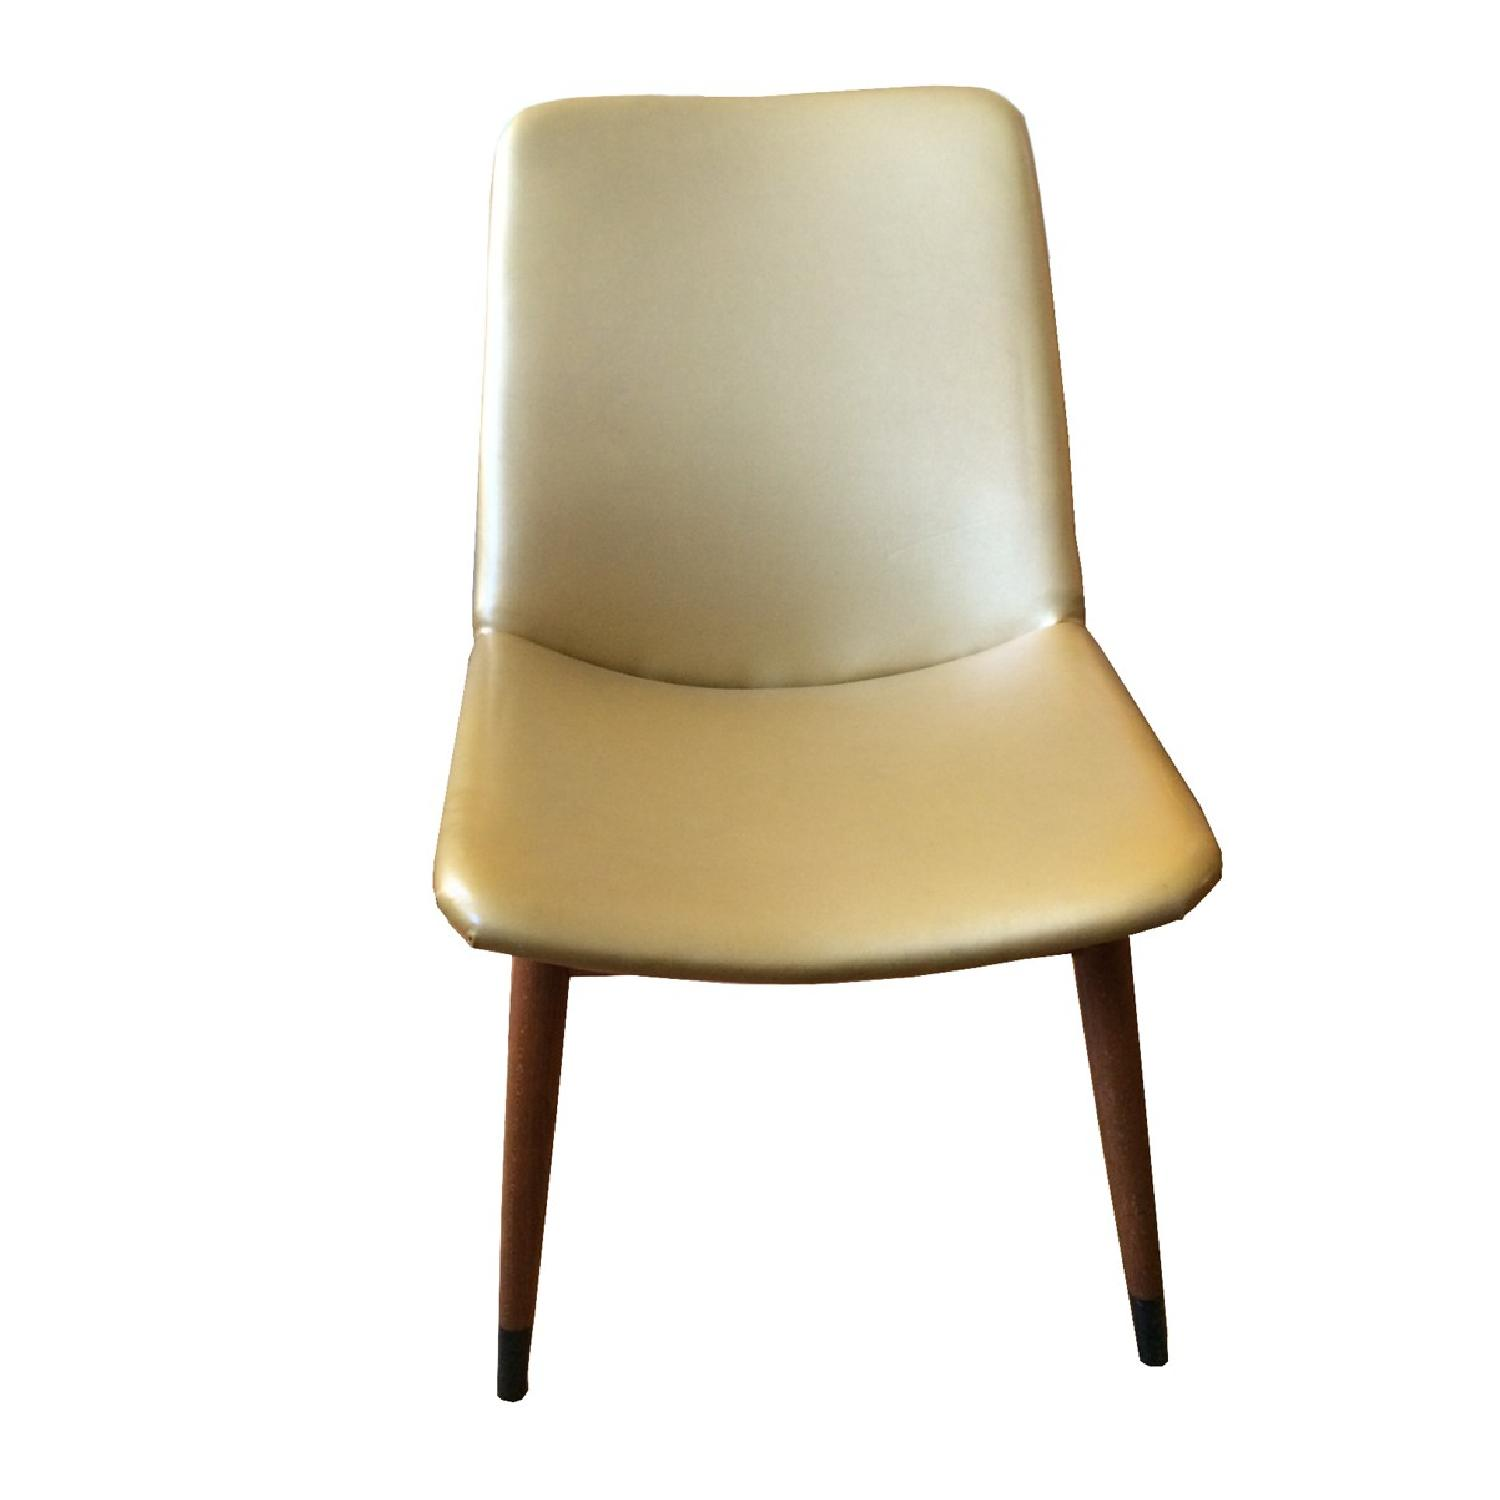 Mid Century Vintage Gold Chair - image-1